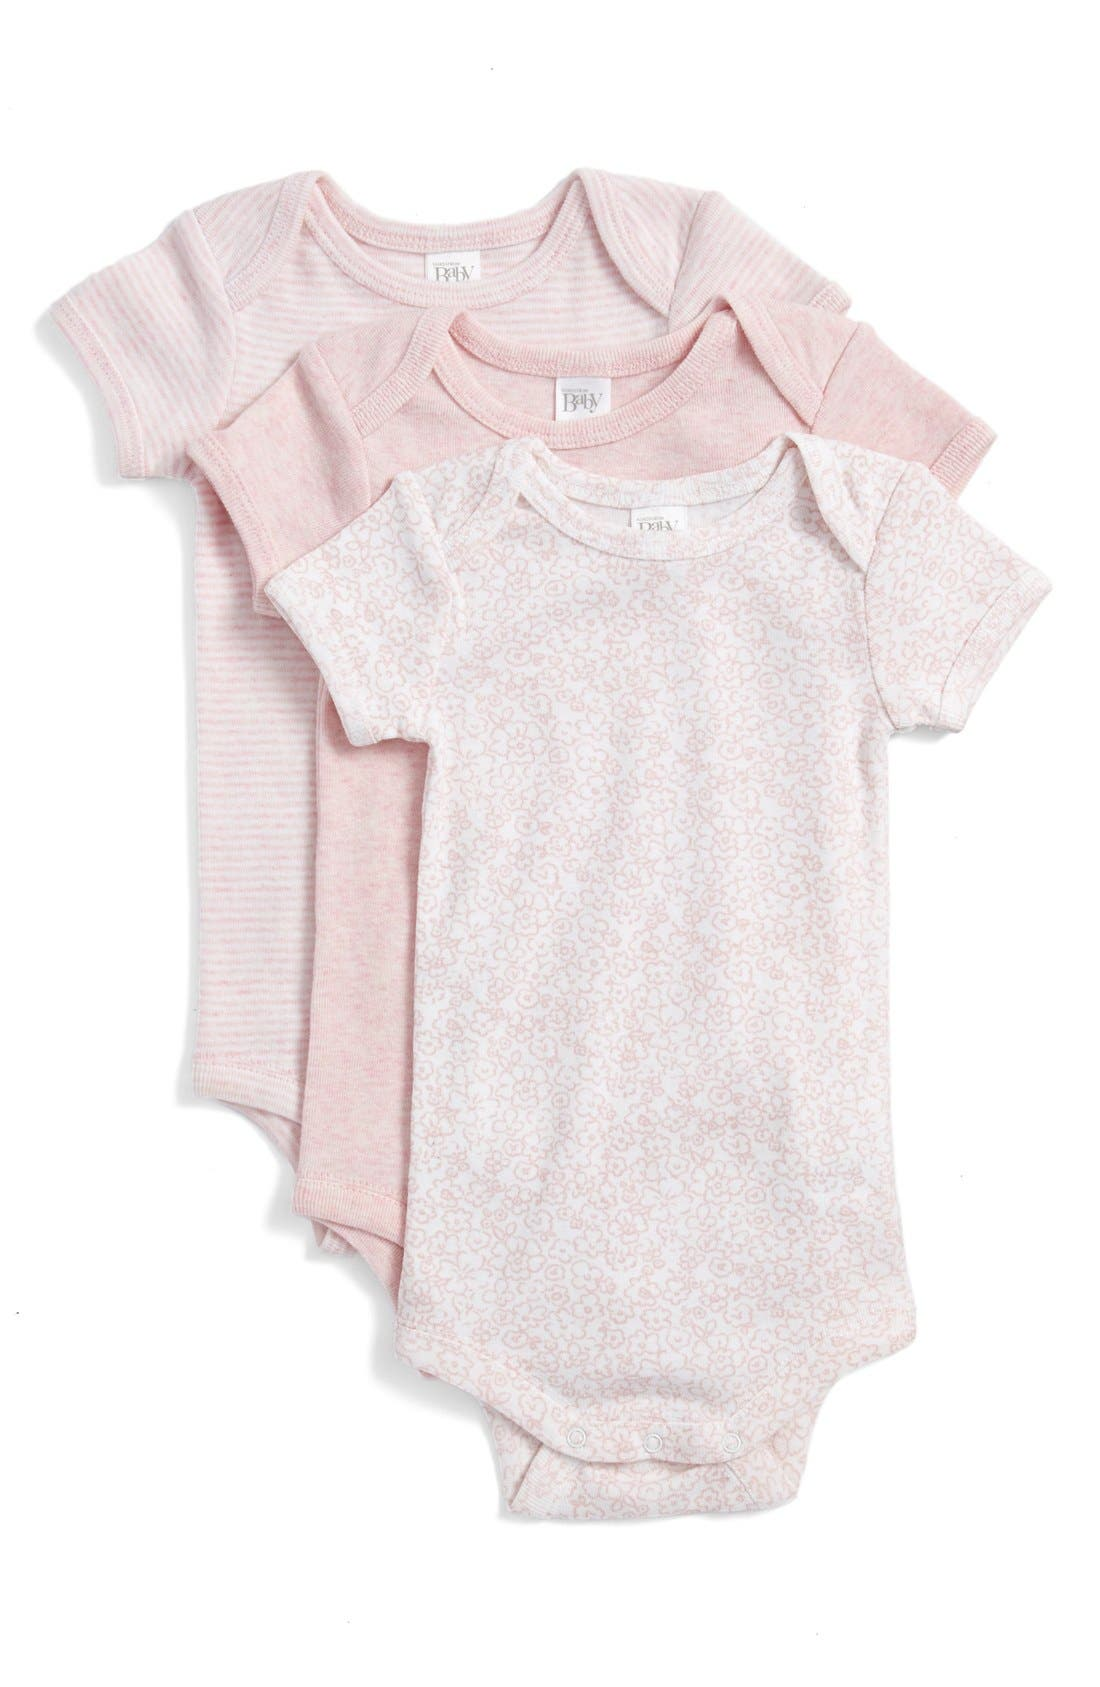 Nordstrom Baby Short Sleeve Cotton Bodysuits (3-Pack) (Baby Girls)